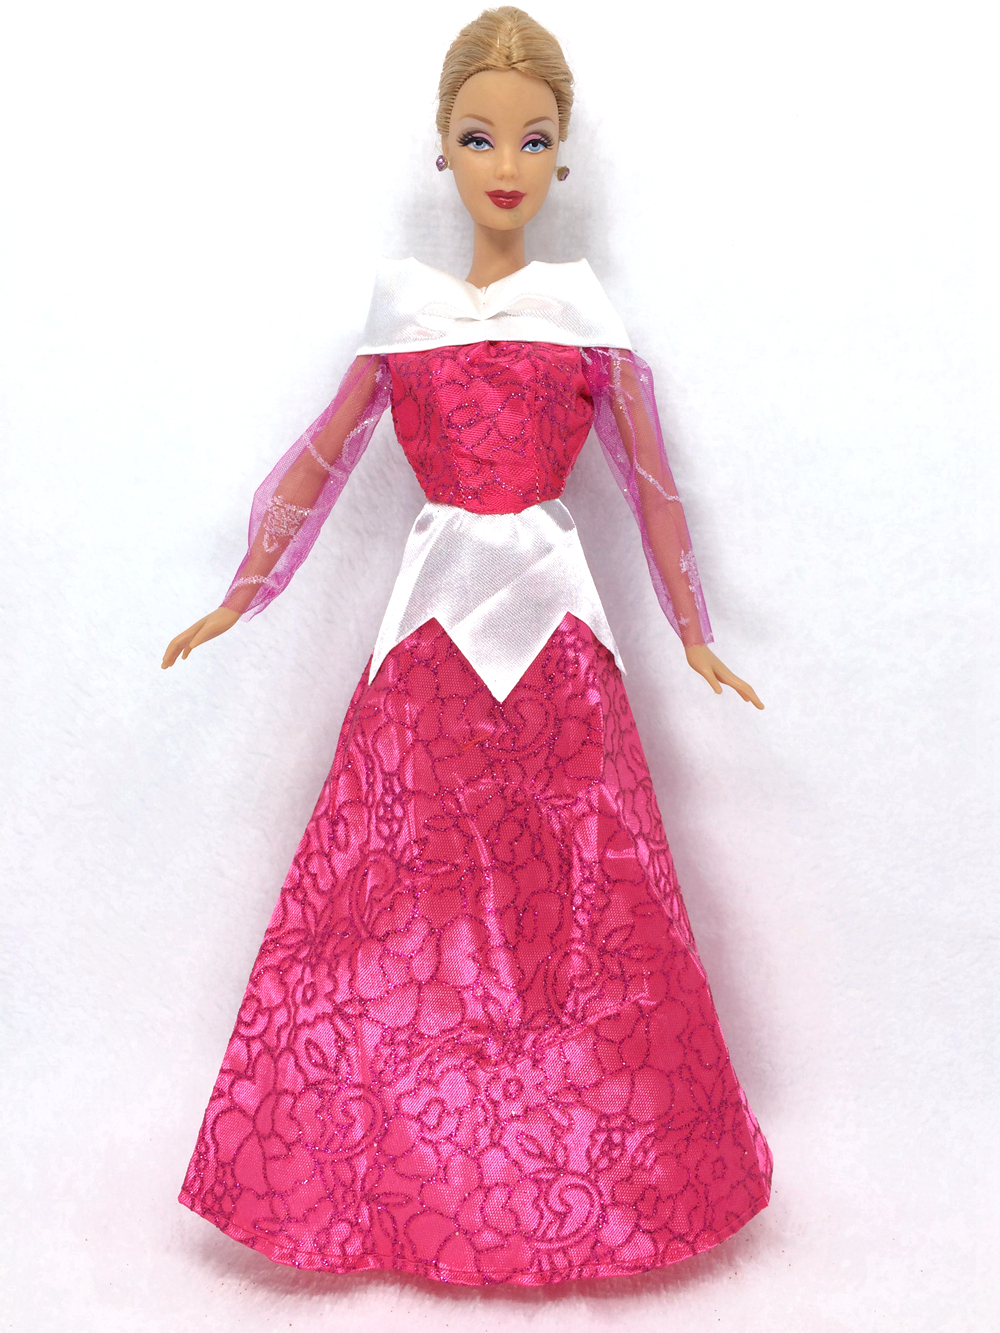 Nk One Set Doll Dress Similar Fairy Tale Princess Aurora Wedding Gown Party Outfit For Barbie Best Girls' Giftin Dolls Accessories From Toys: Princess Aurora Wedding Dresses At Reisefeber.org